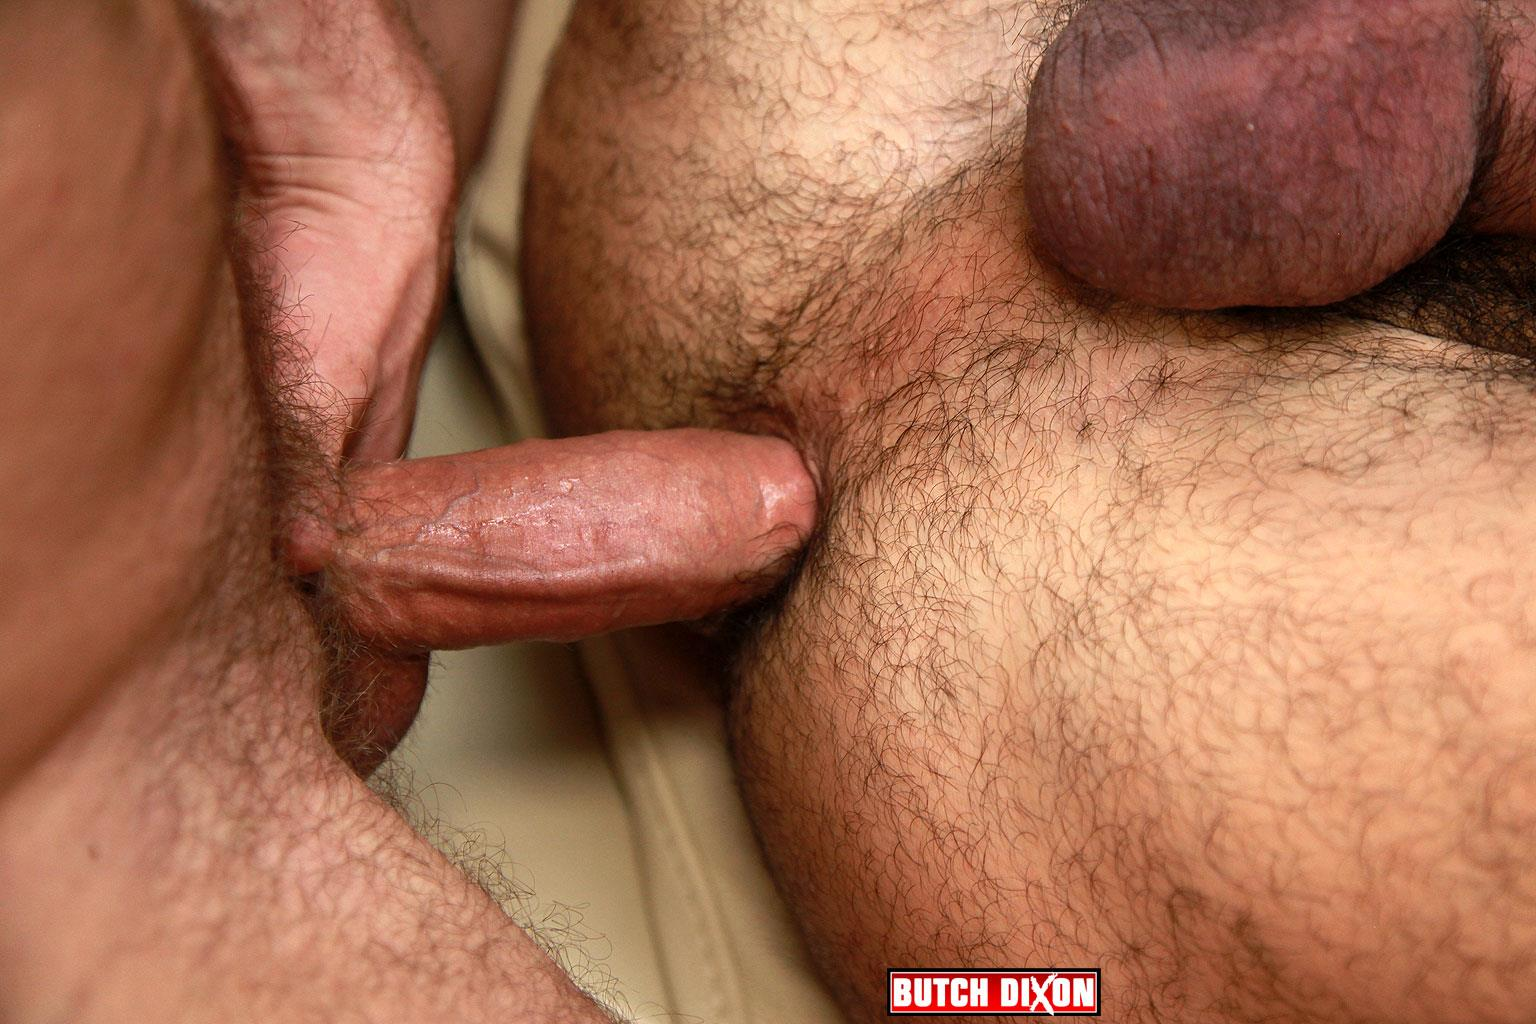 Butch Dixon Adam Russo and Adam Dacre Getting Fucked By A Big Uncut Cock Amateur Gay Porn 07 Adam Russo Getting A Big Bareback Uncut Cock Up His Hairy Ass